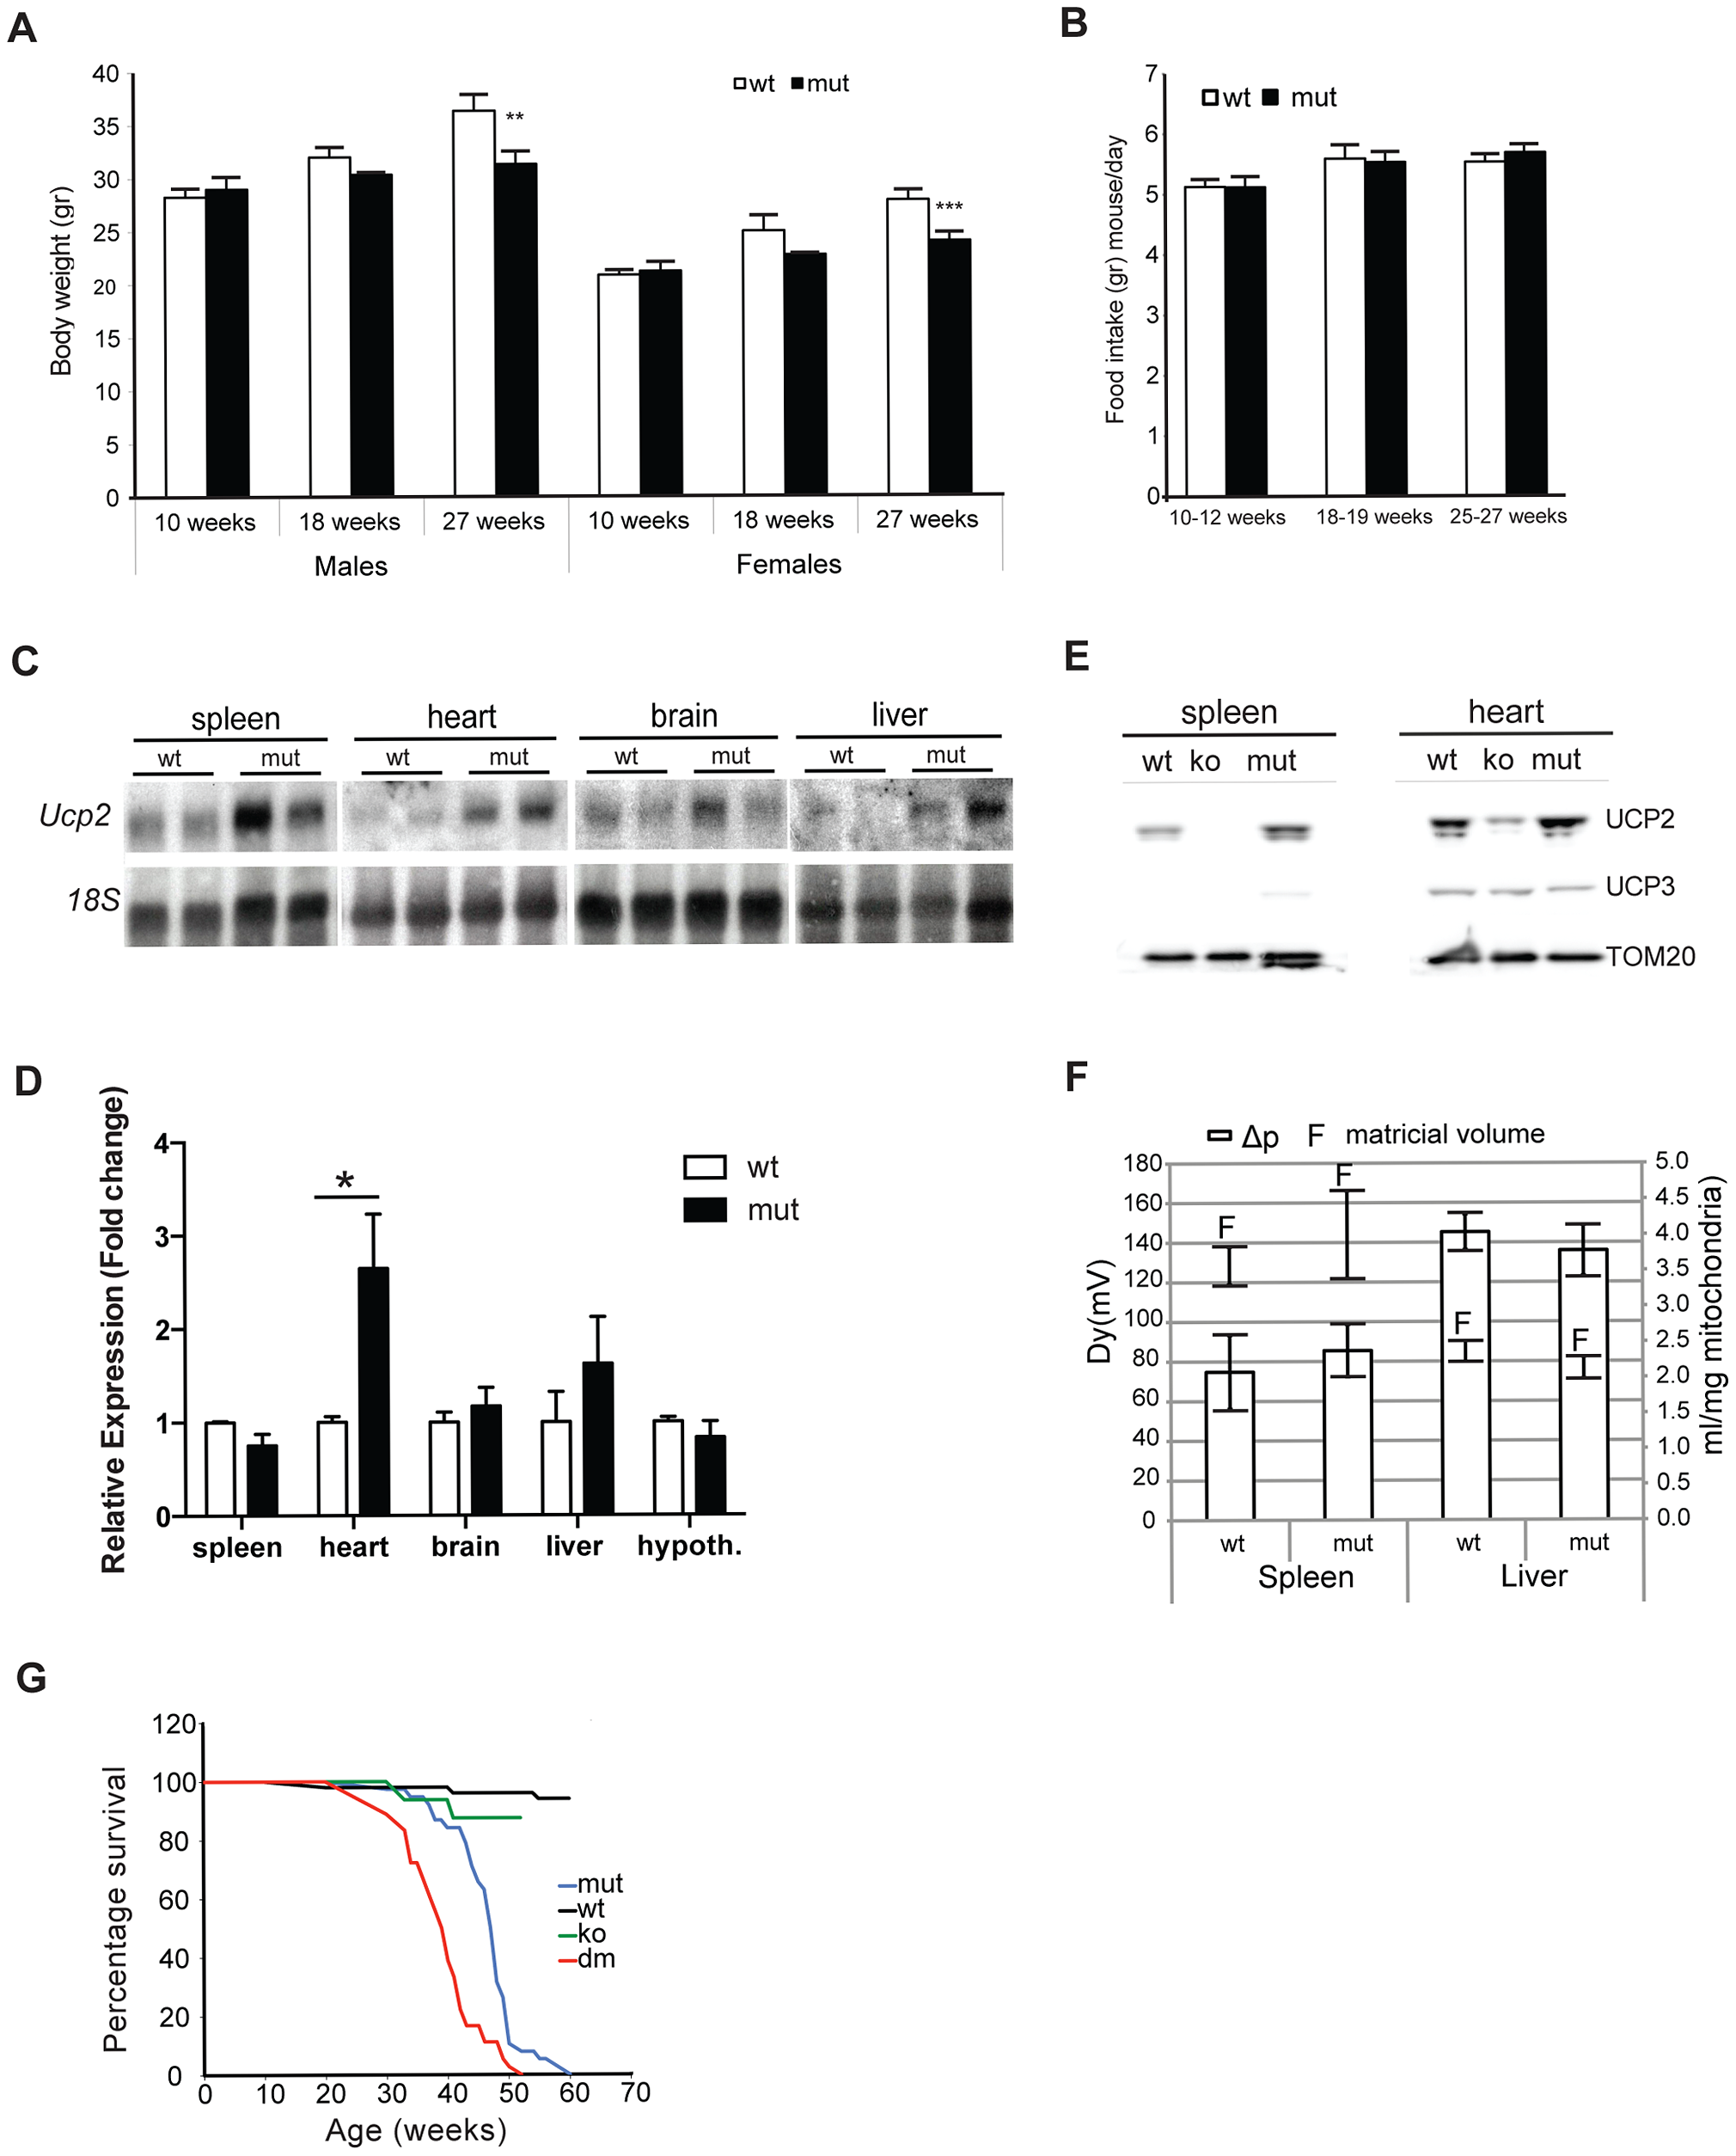 MtDNA mutator mice have lower body mass and upregulated UCP2 levels.